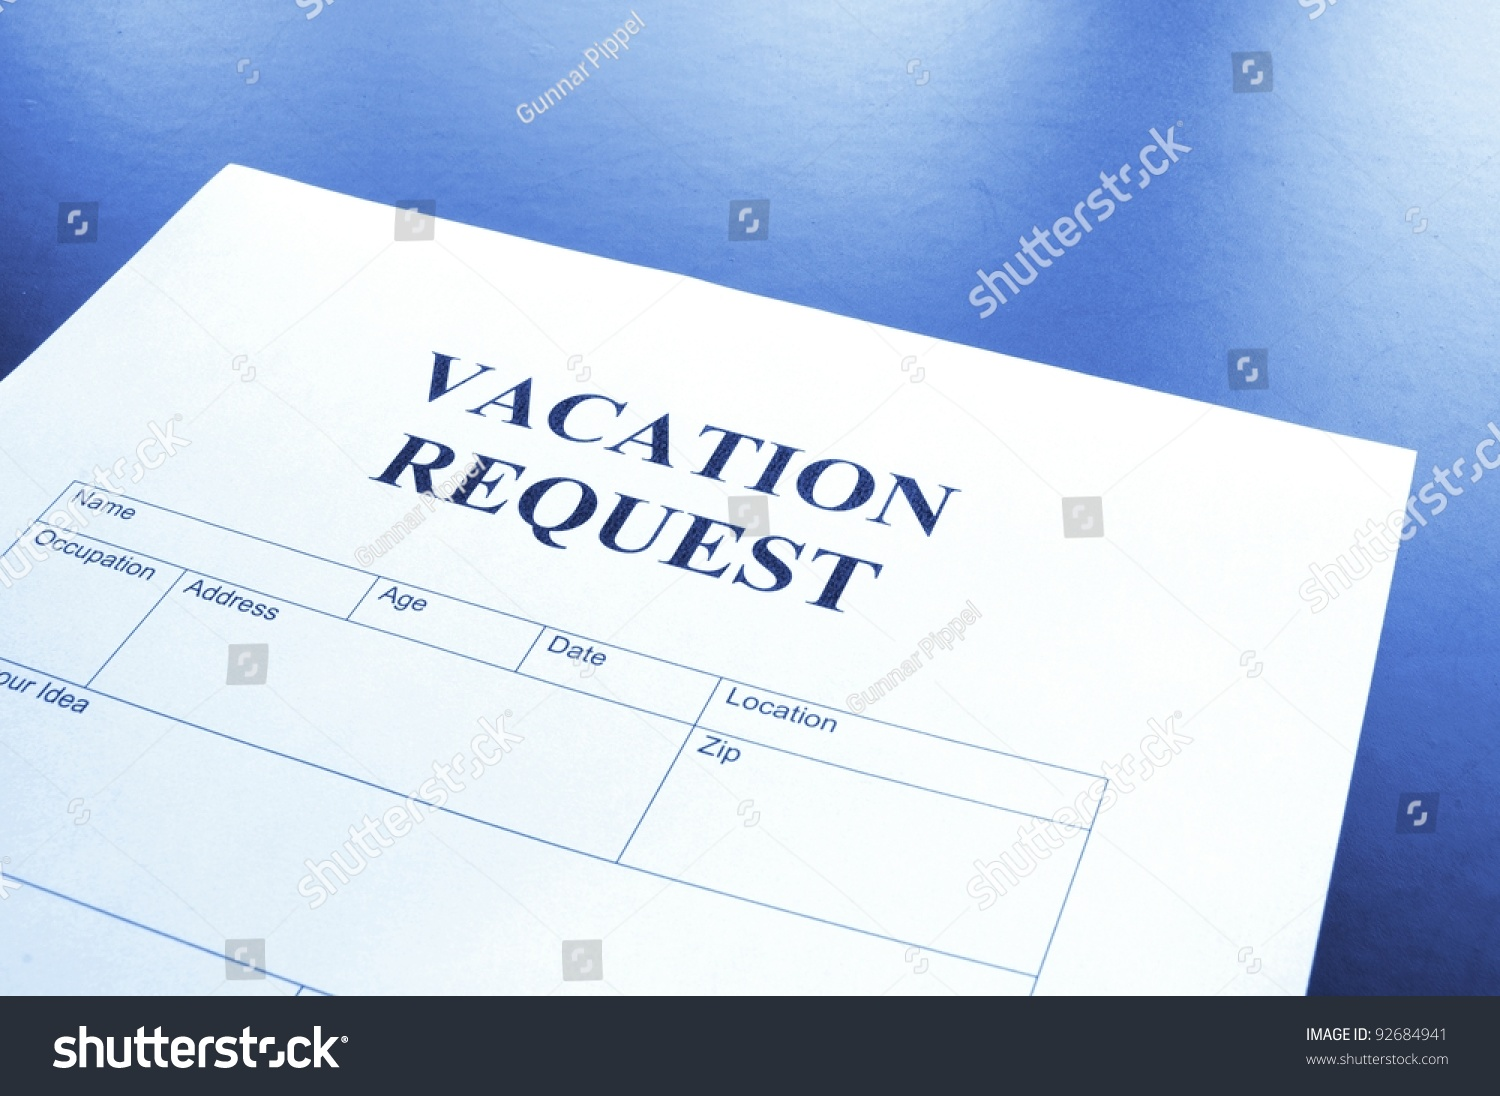 Vacation Request Form Business Office Showing Photo 92684941 – Vacation Request Form